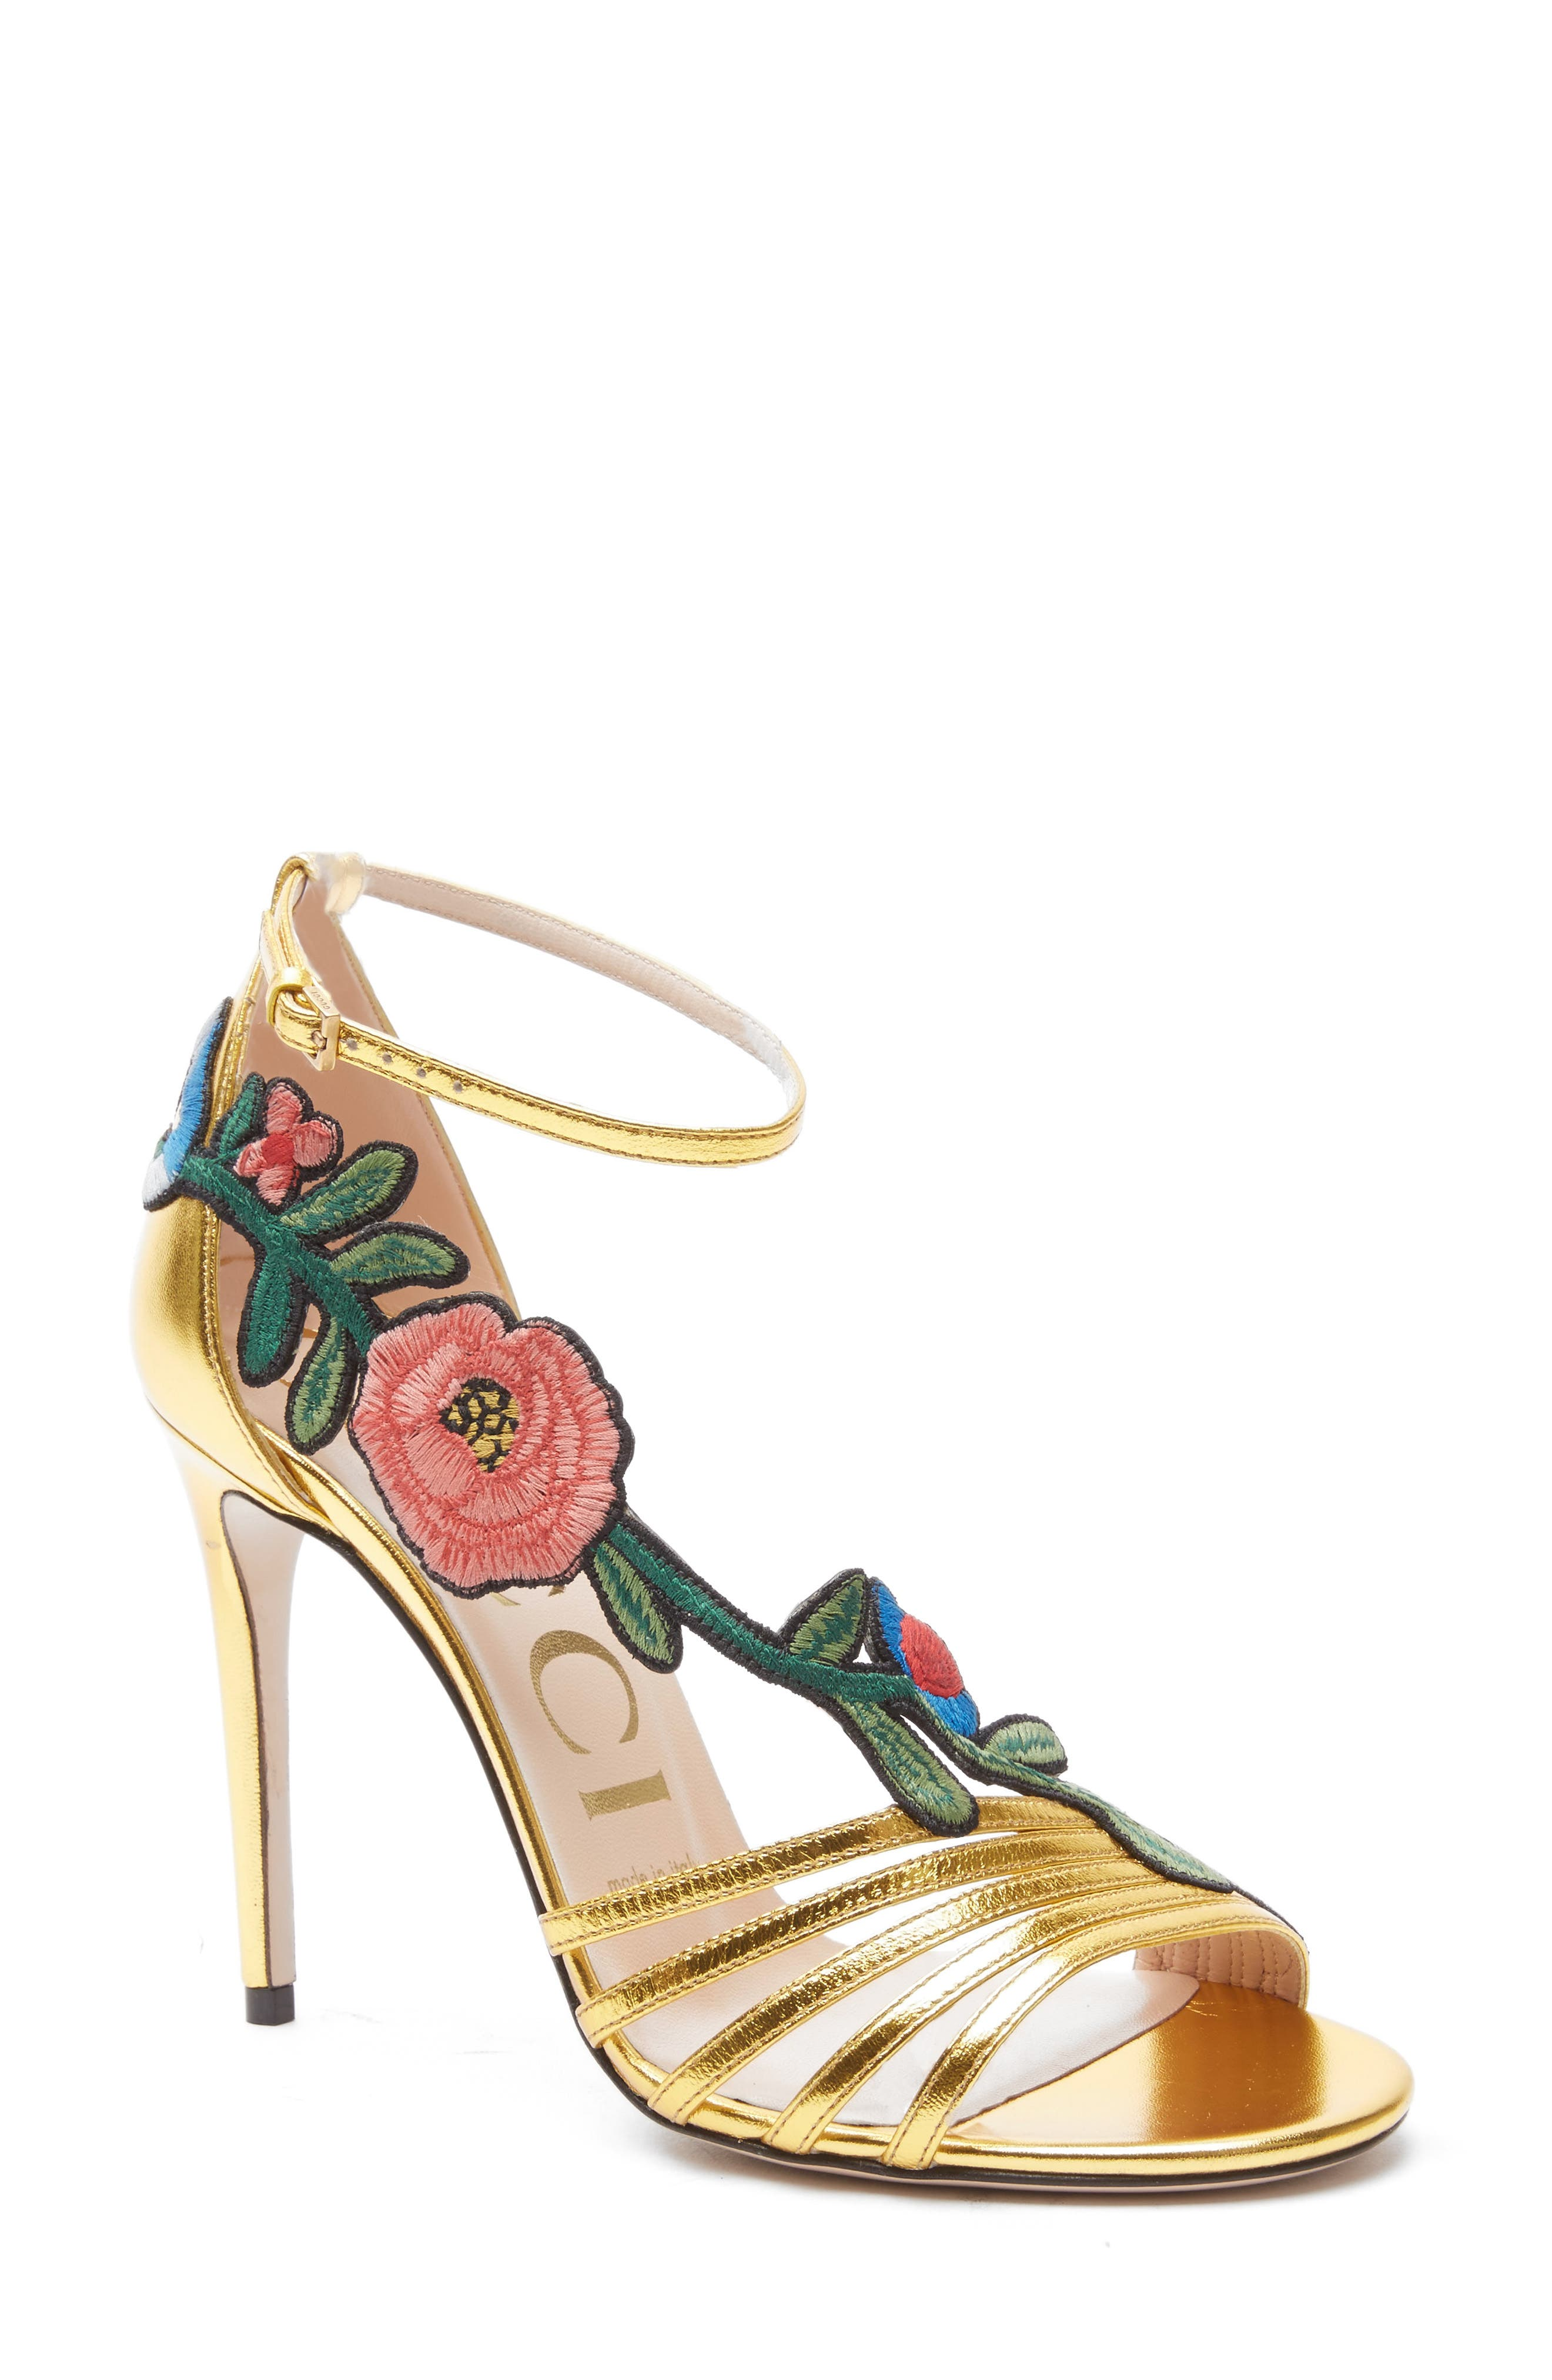 Main Image - Gucci Ophelia Floral Sandal (Women)